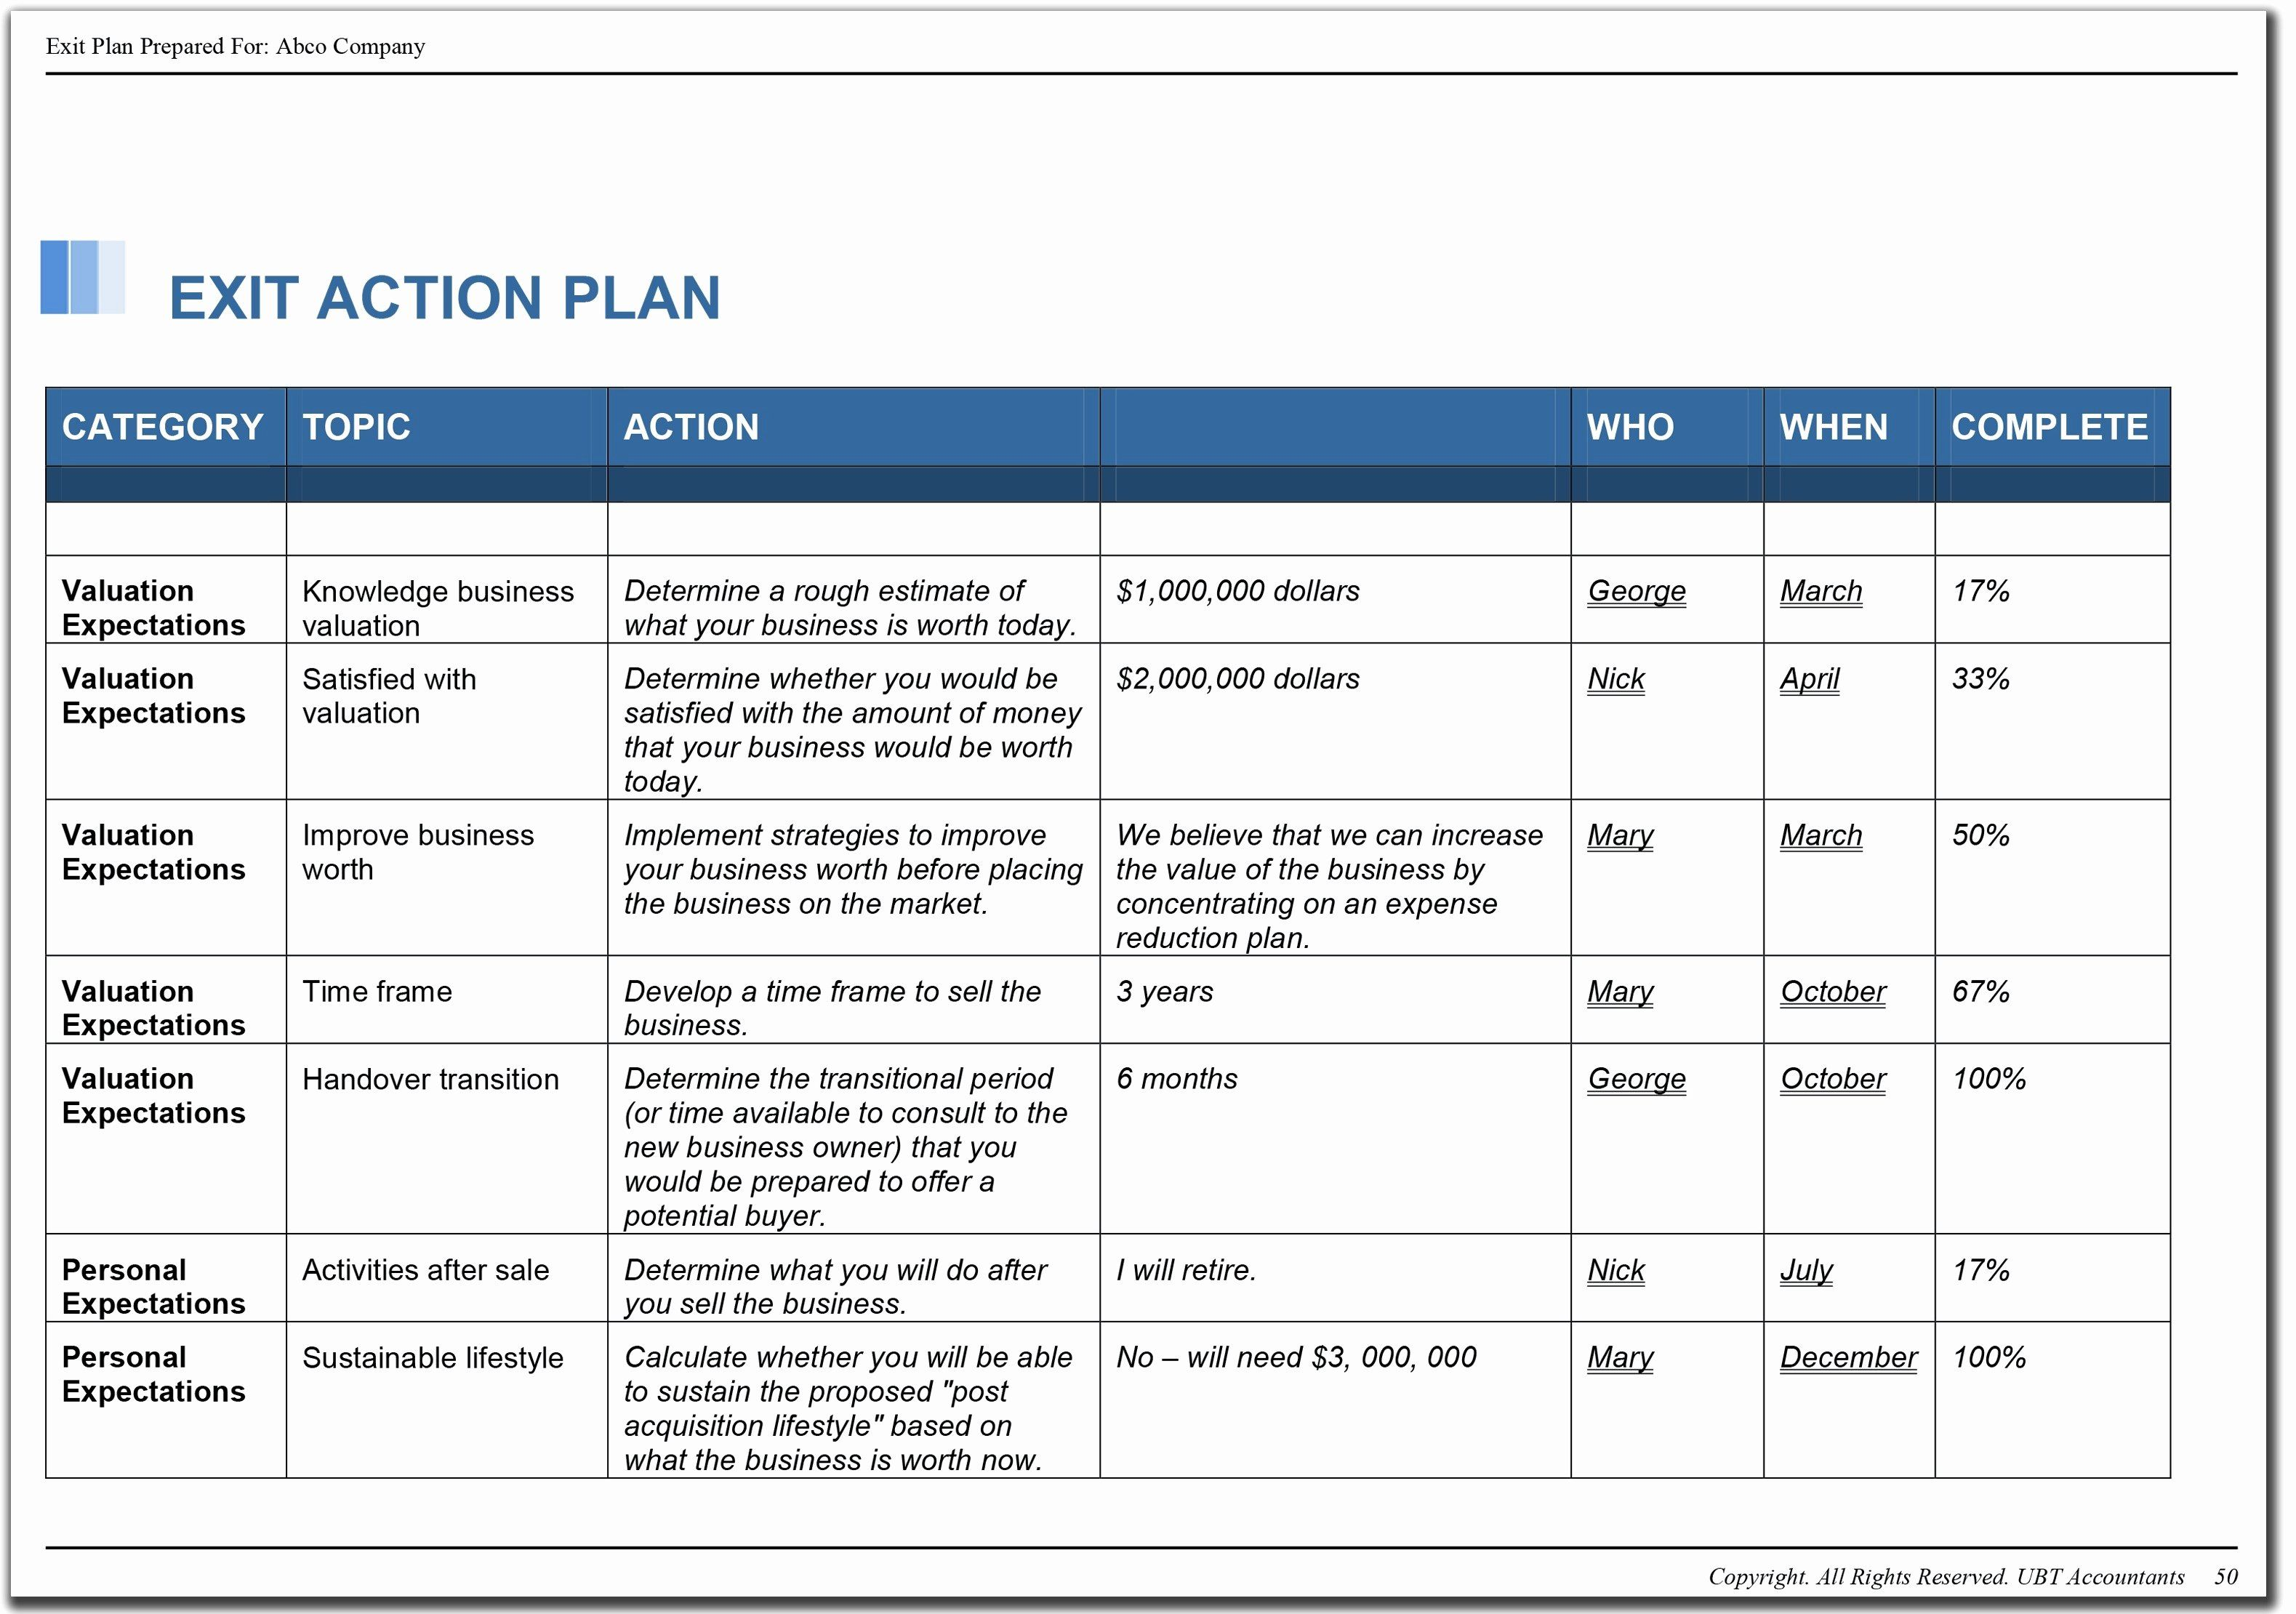 Customer Service Plan Template in 2020 Action plan